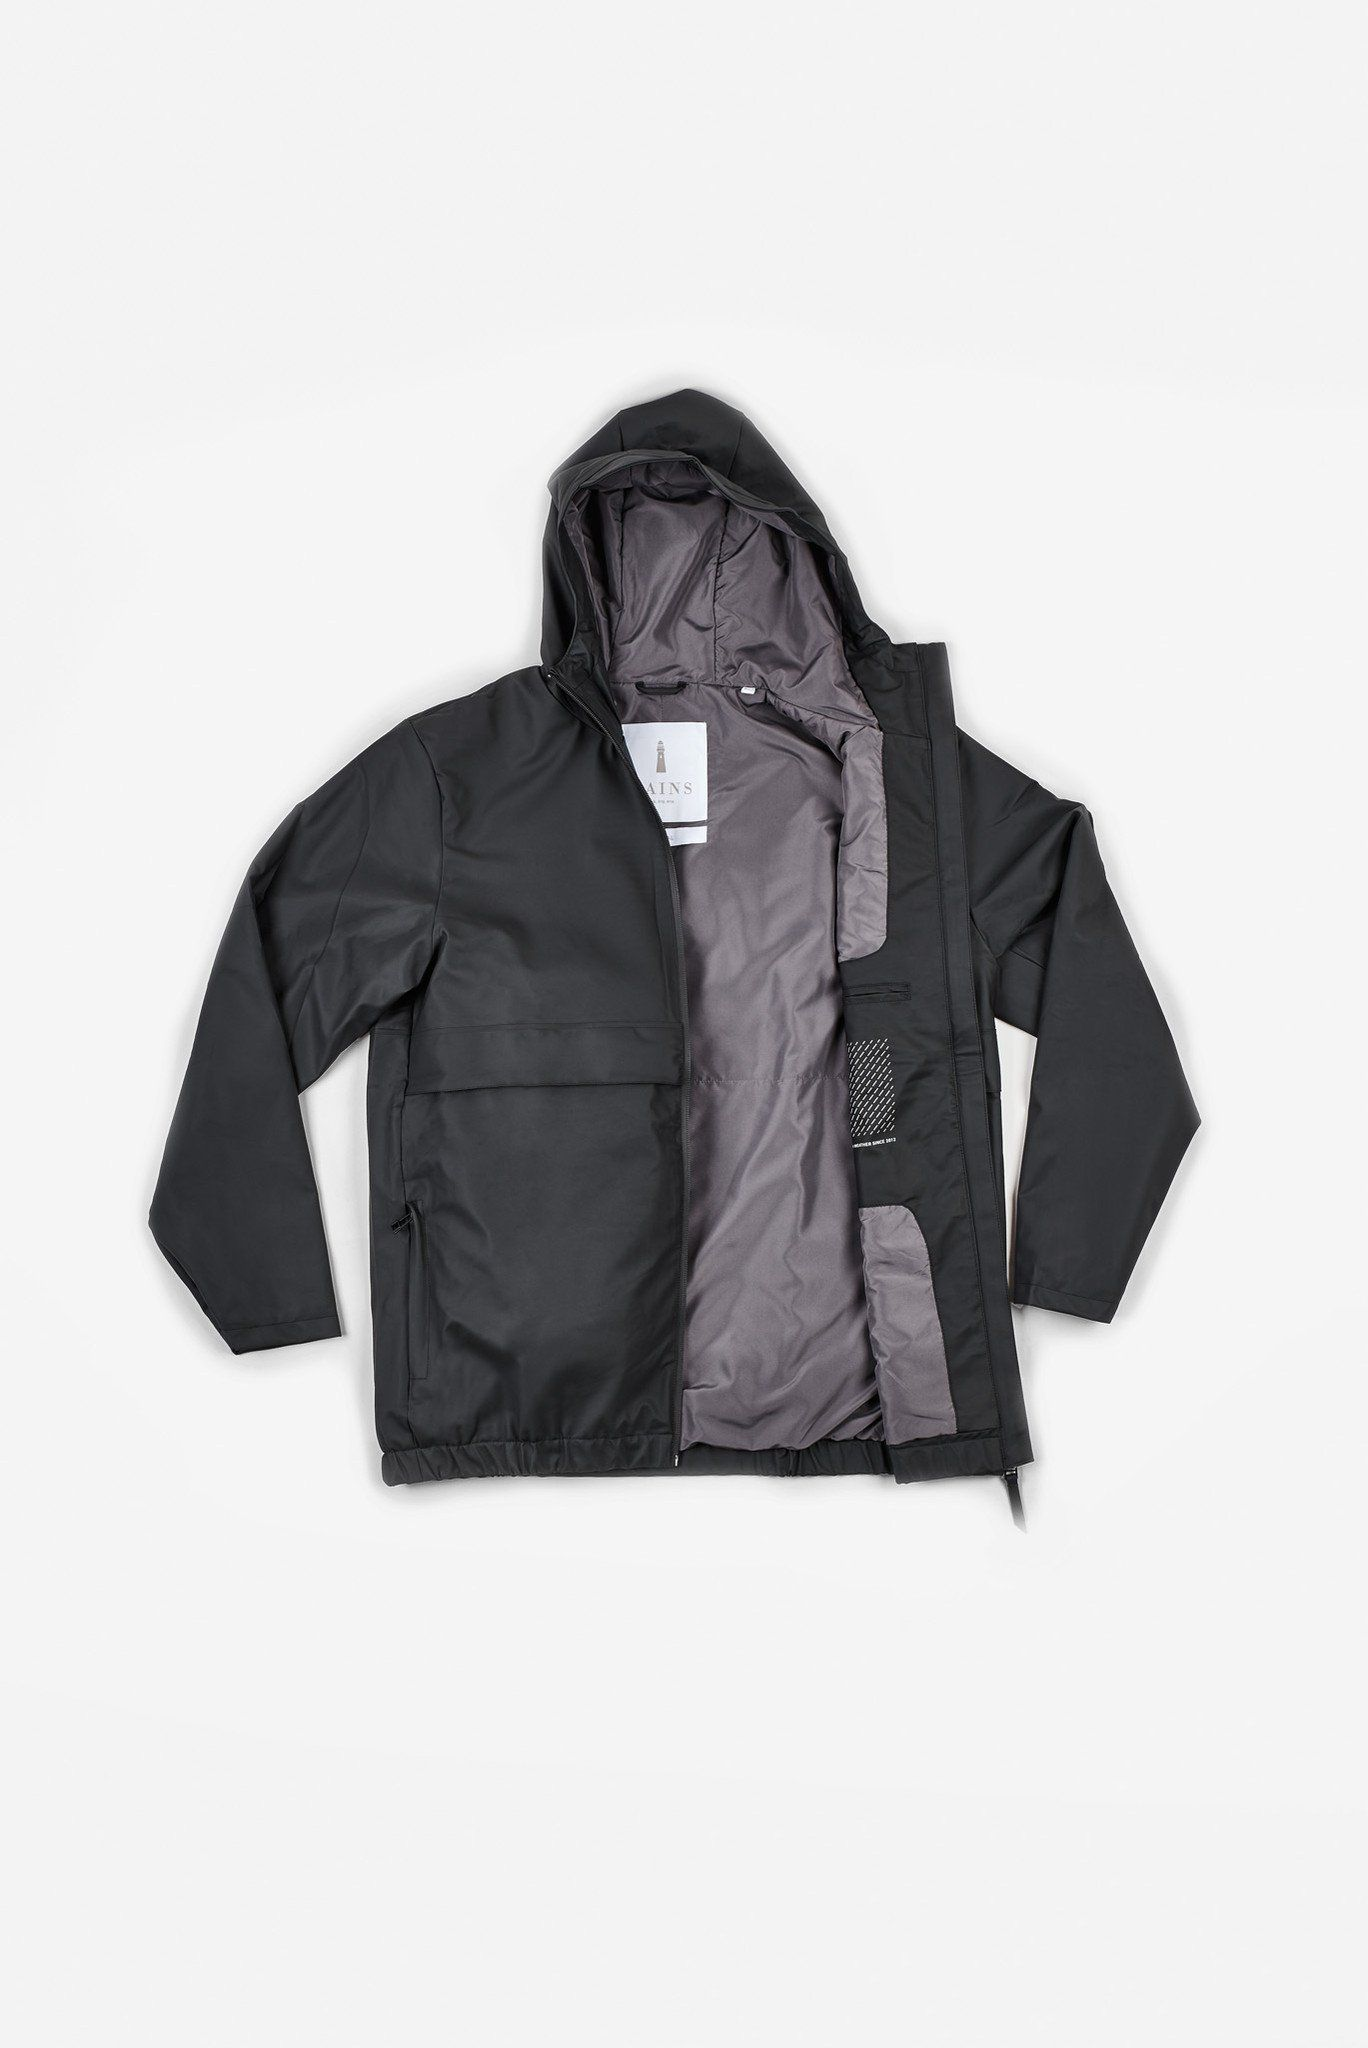 Free Jacket is our sporty interpretation of a transitional rain ...